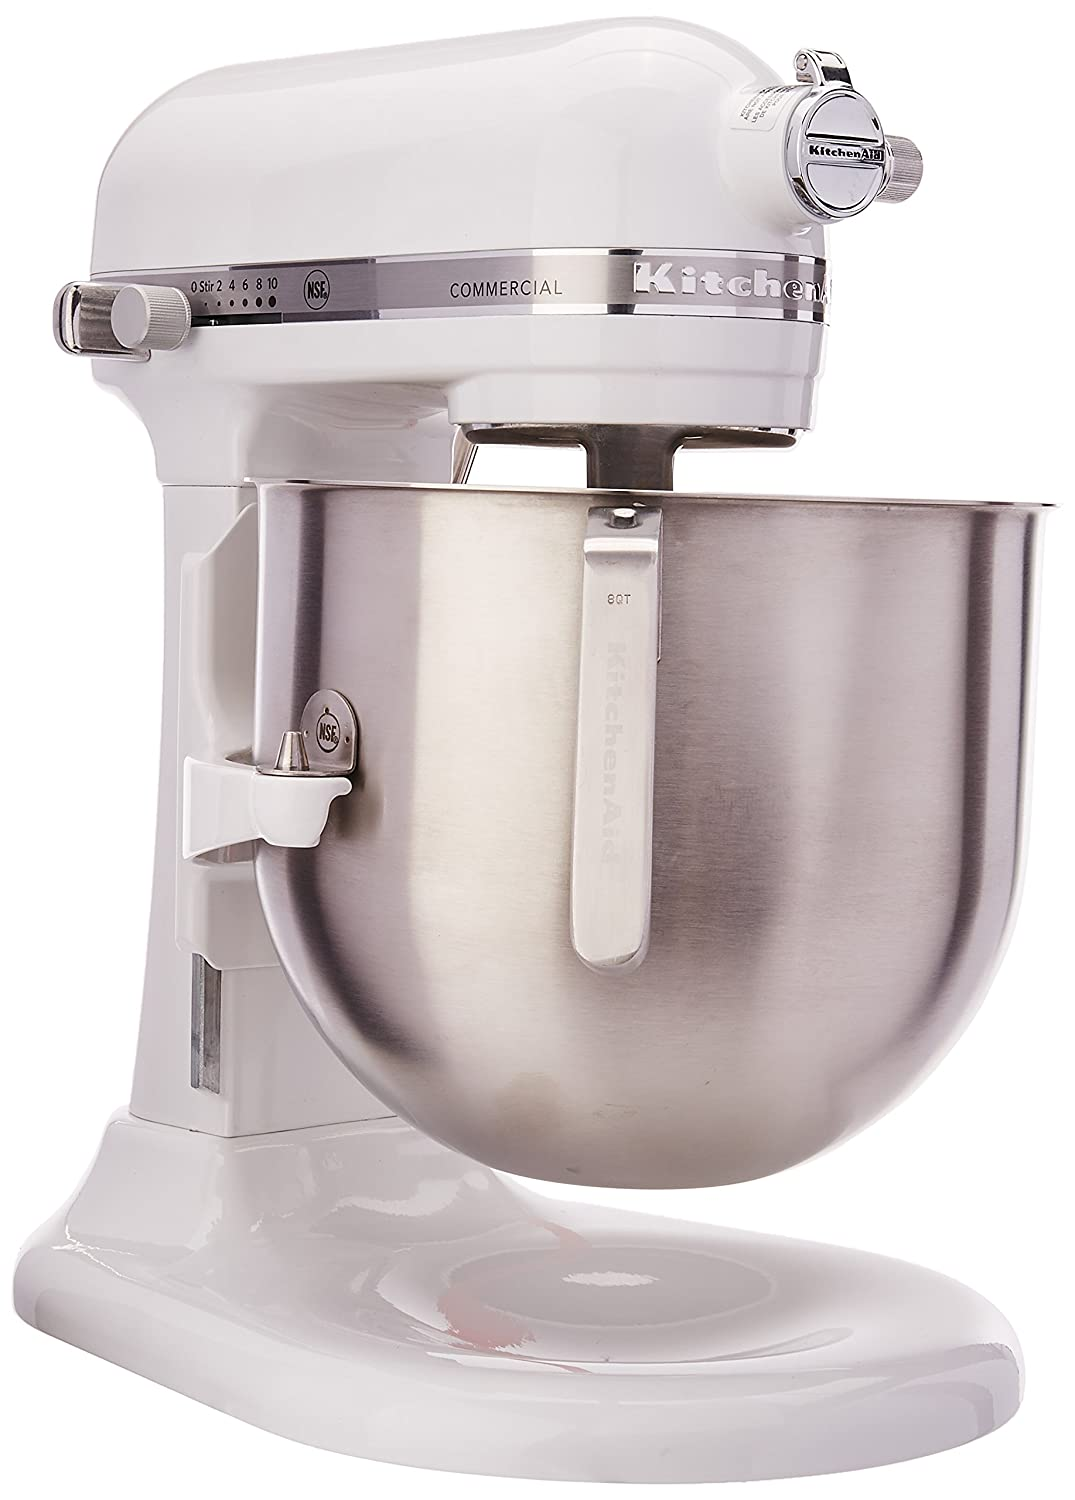 KitchenAid KSM8990WH 8-Quart Commercial Countertop Mixer, 10-Speed, Gear-Driven, White